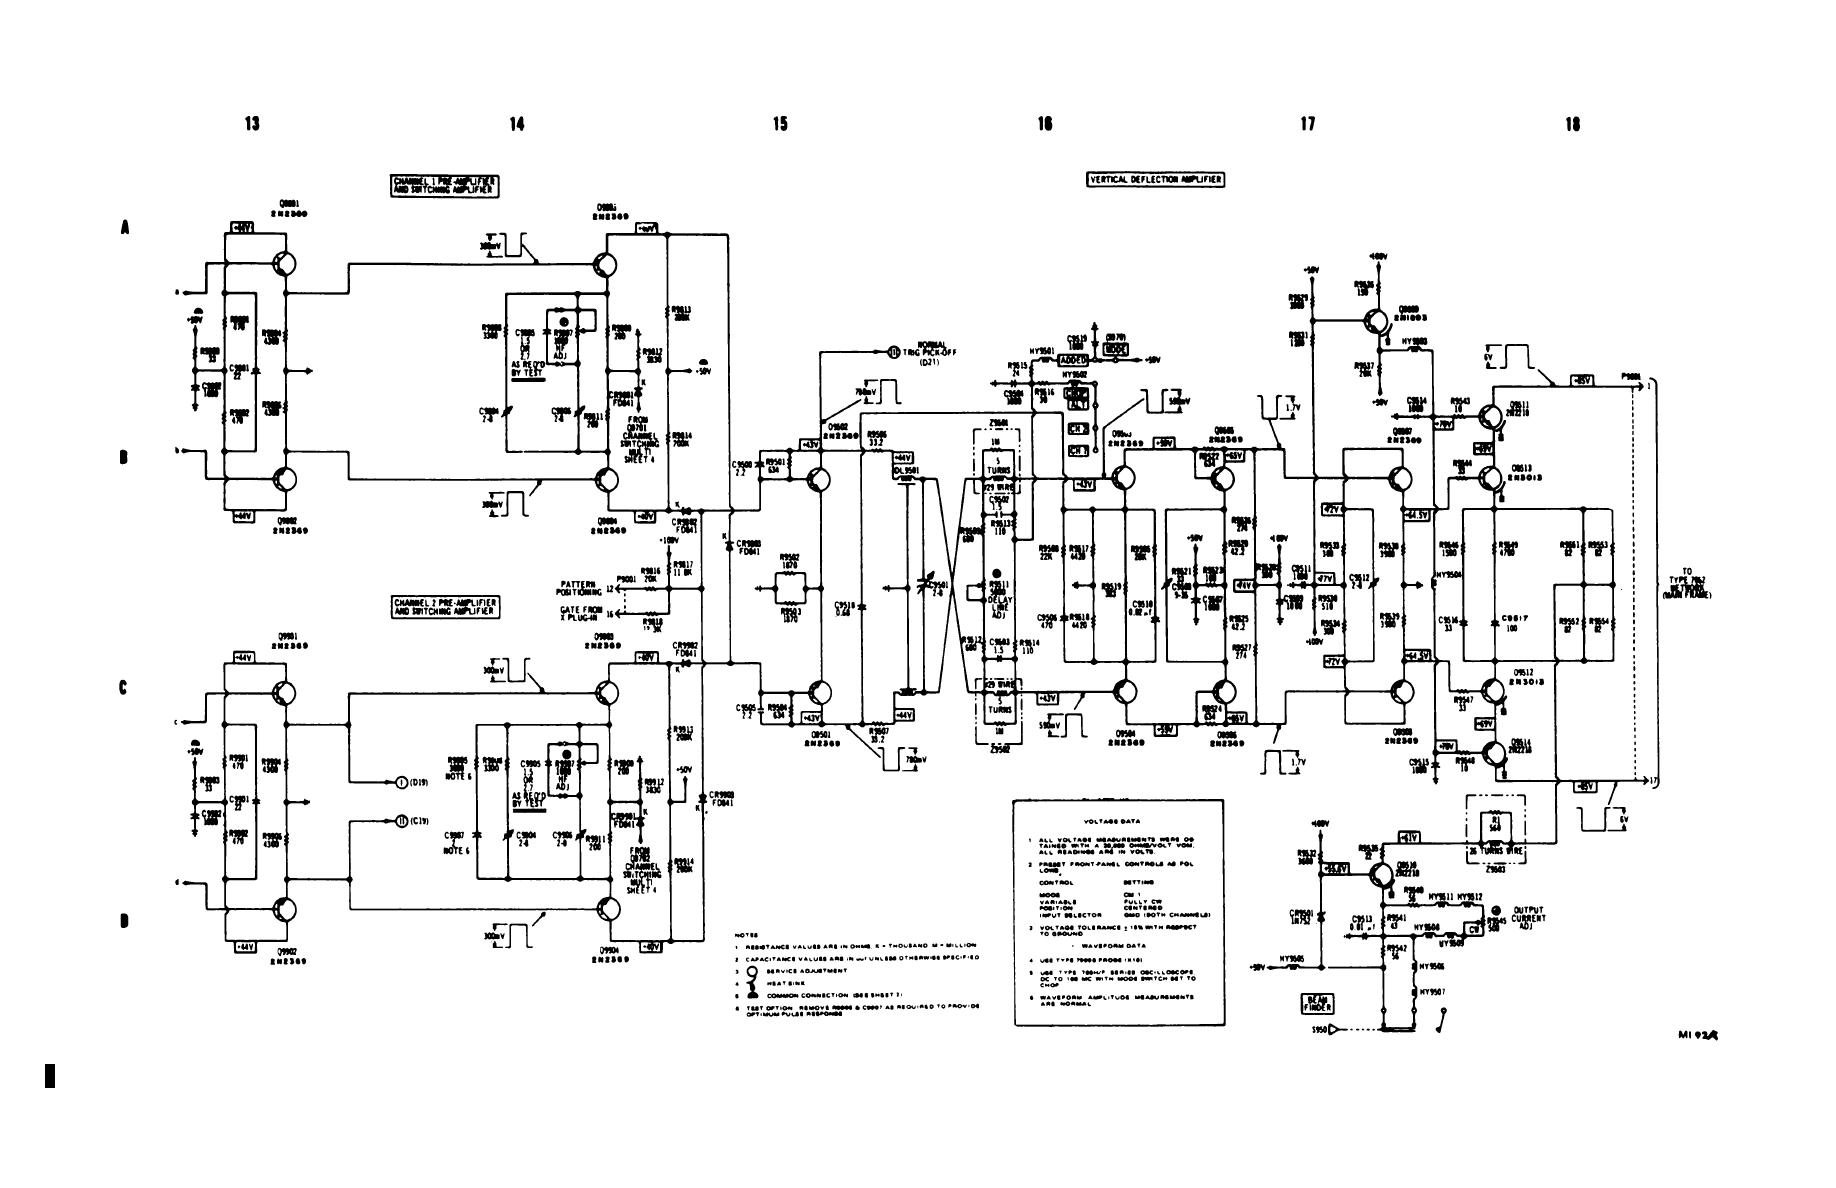 Figure 6-2.1. Dual trace plug-in (type 79-02A with mod 103